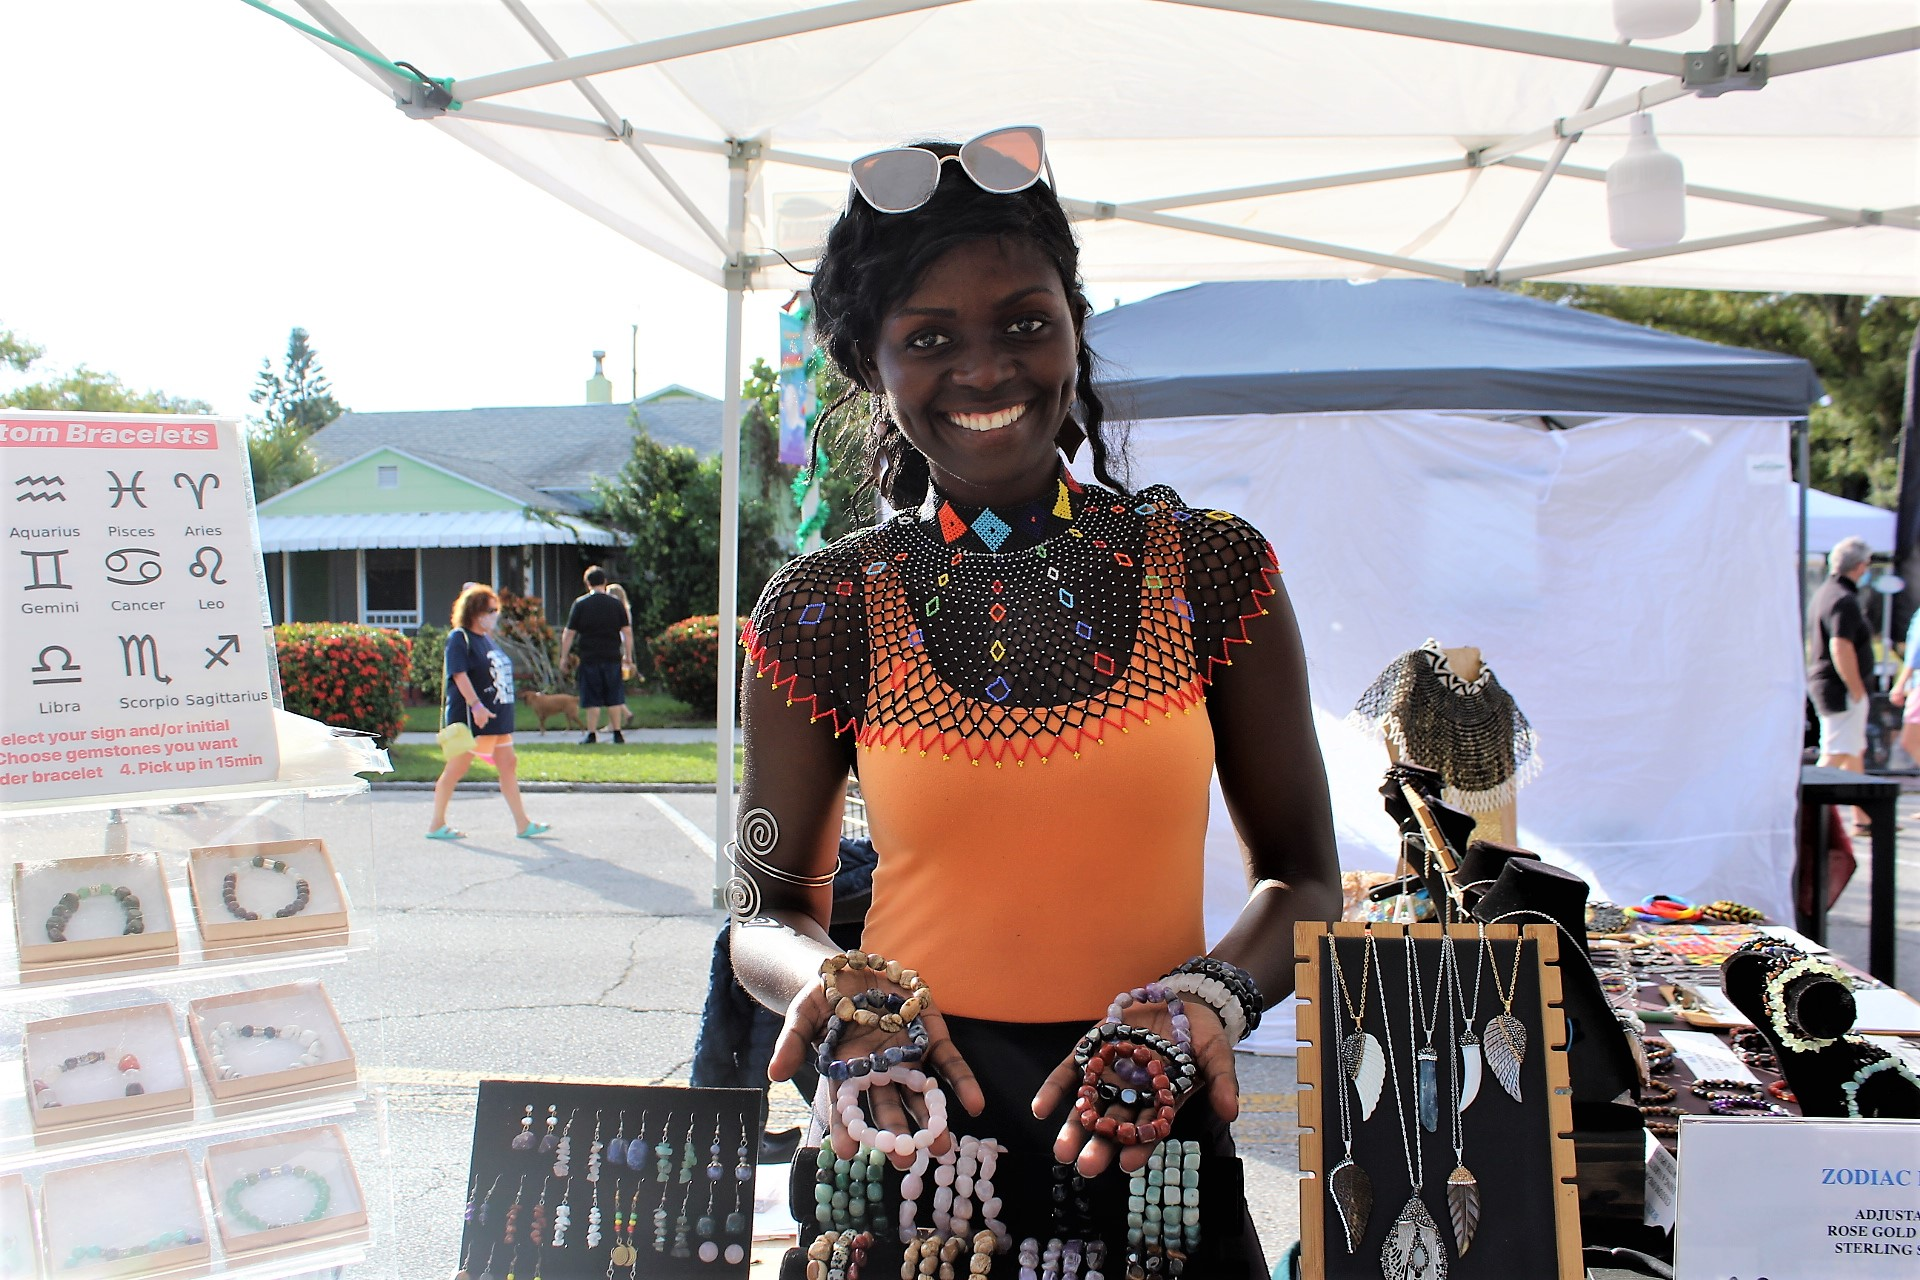 A woman in an orange tank top outside at a jewelry stall.